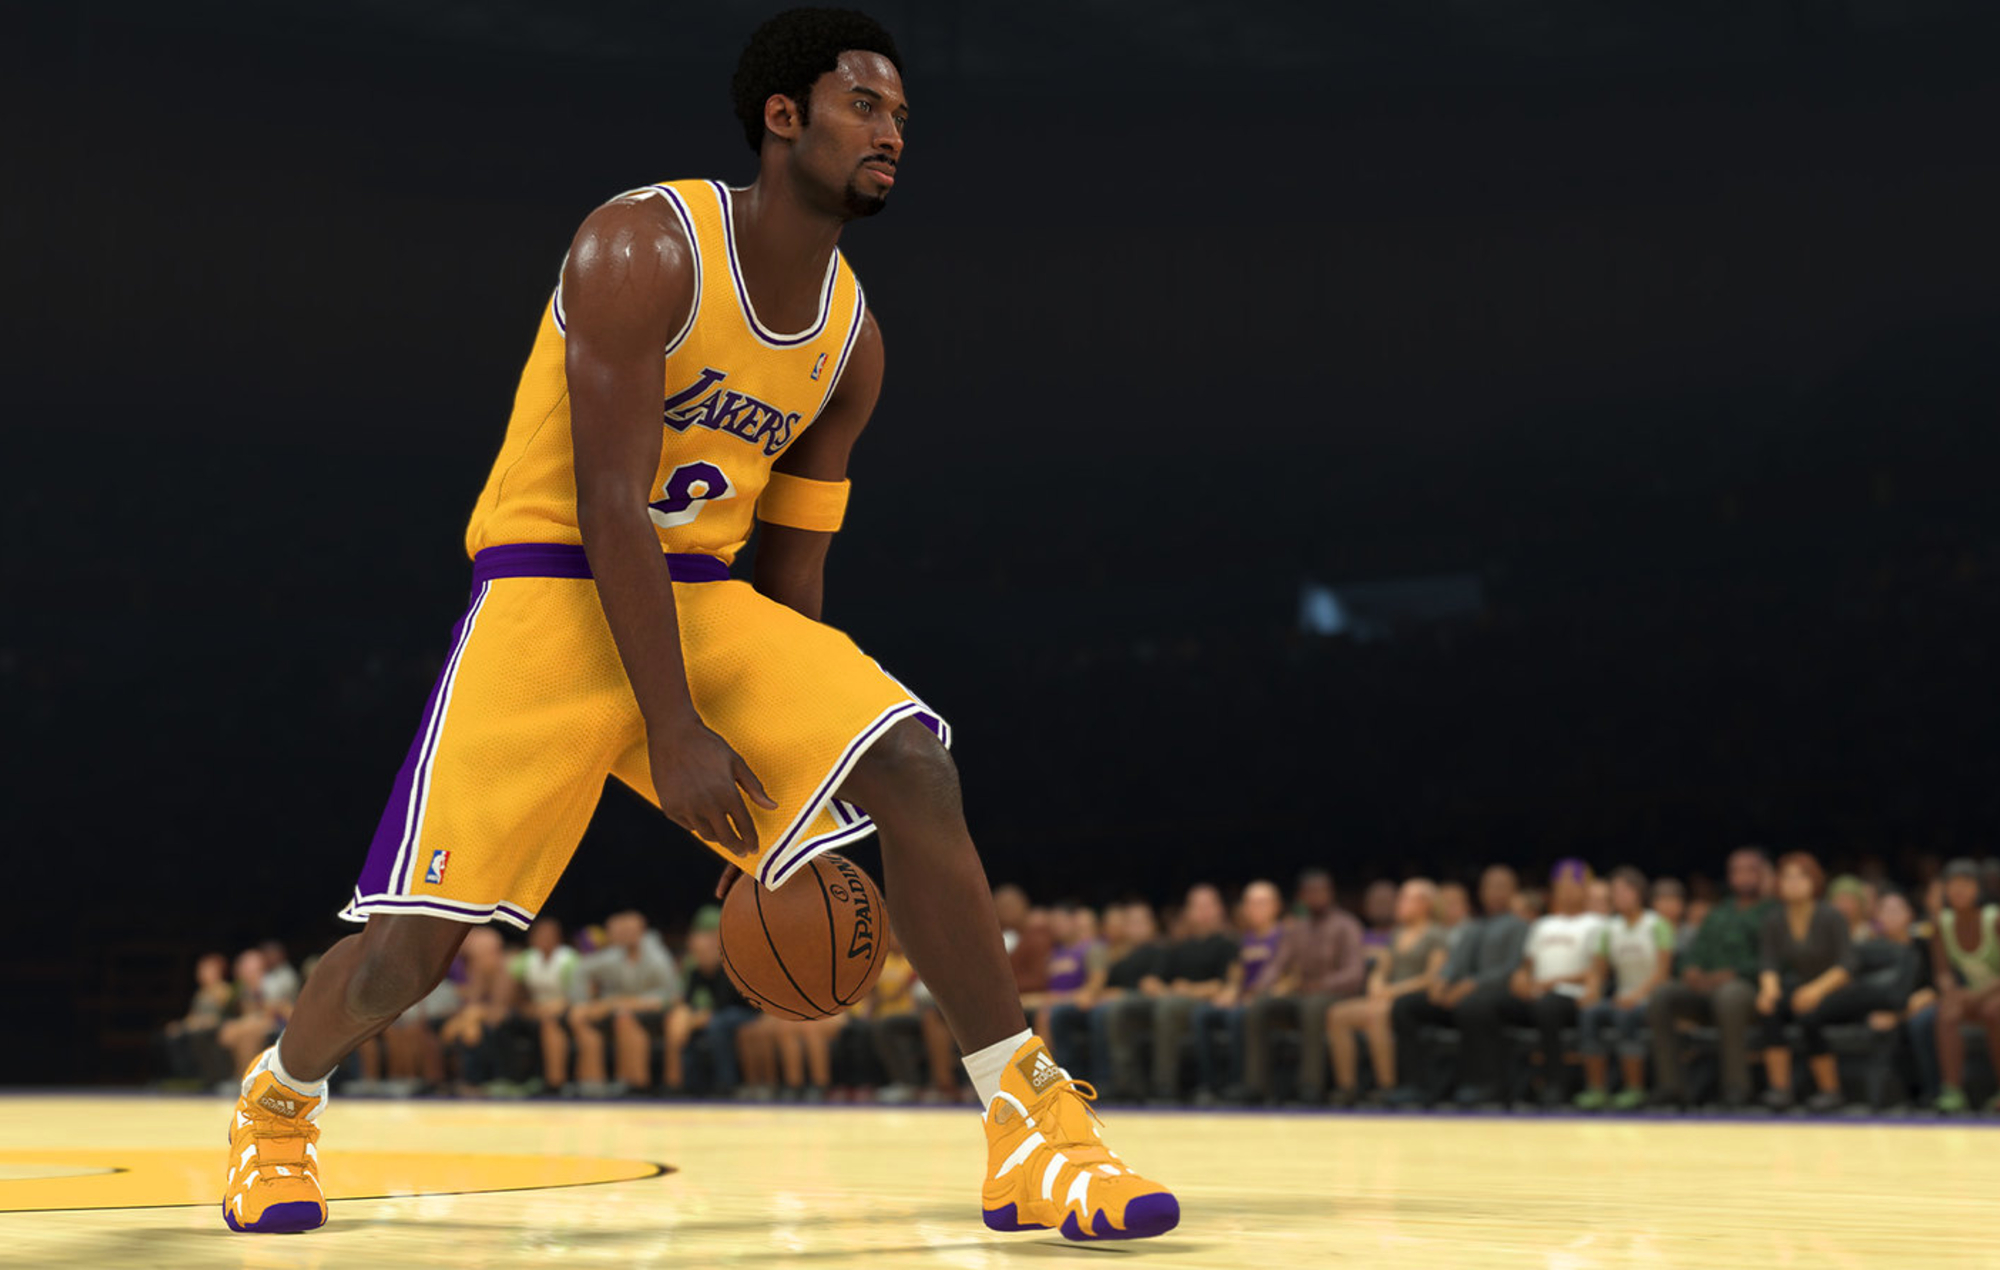 2K Games details new 'NBA 2K21' gameplay changes - NME